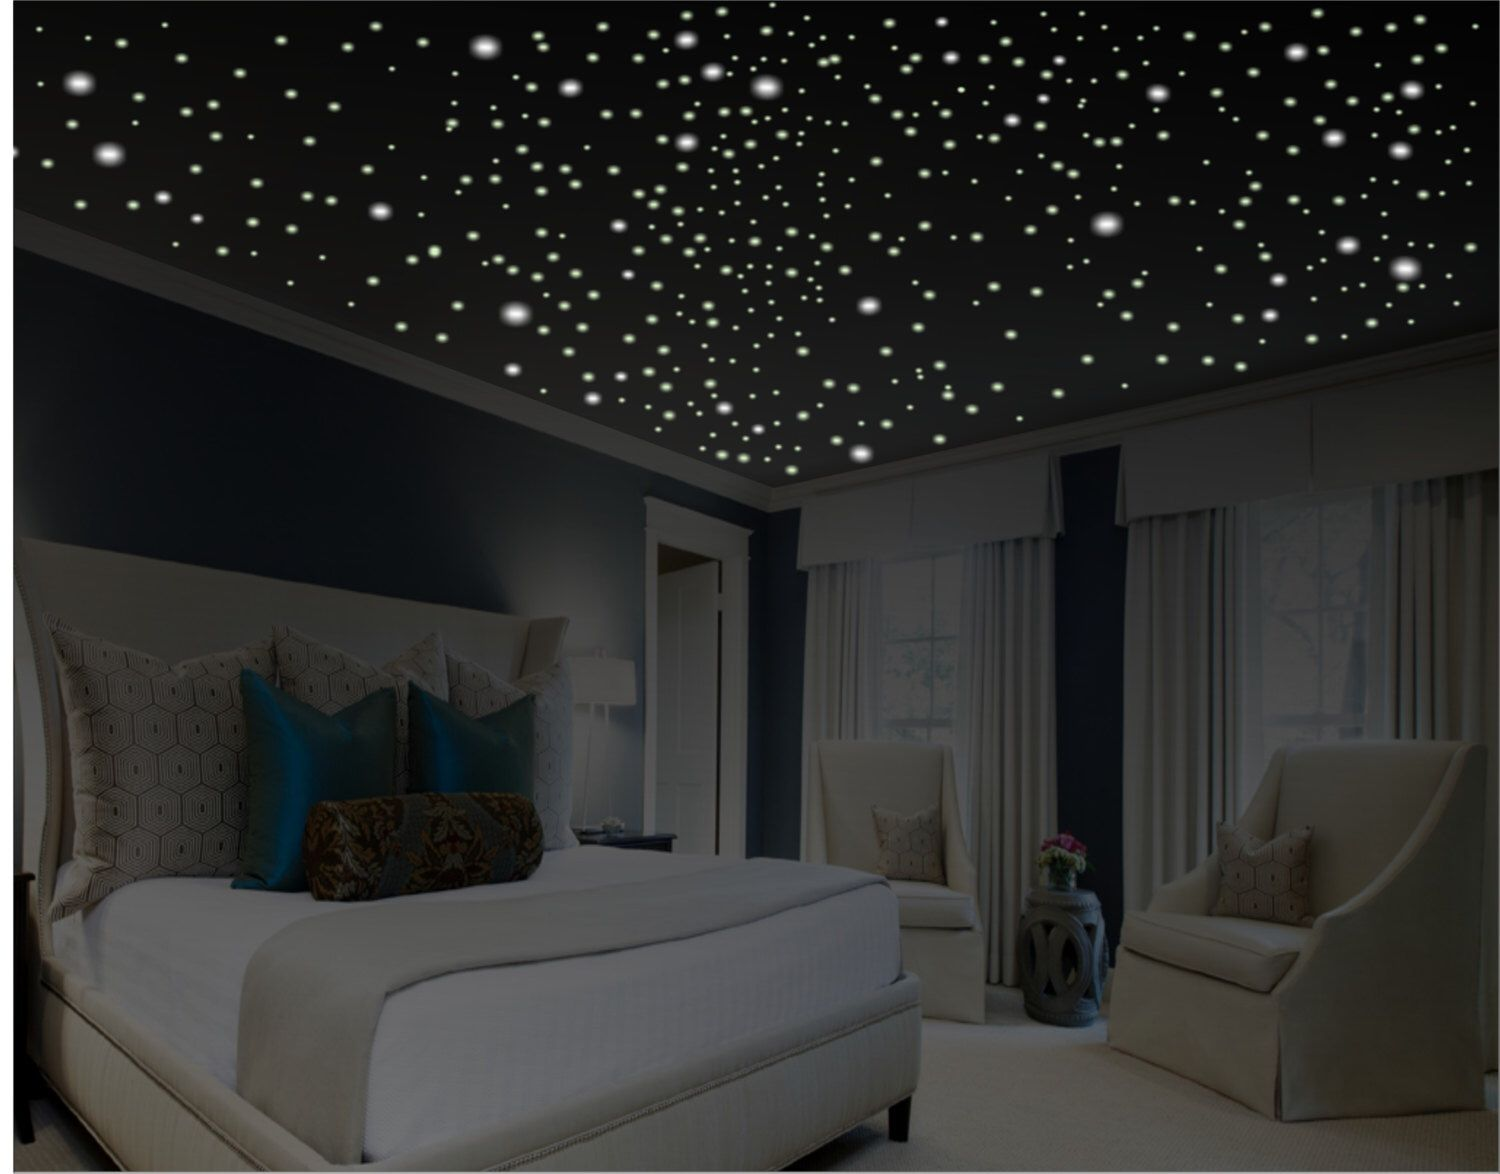 Star Wall Decor Ideas: Glow In The Dark Stars / Romantic Bedroom Decor / Romantic